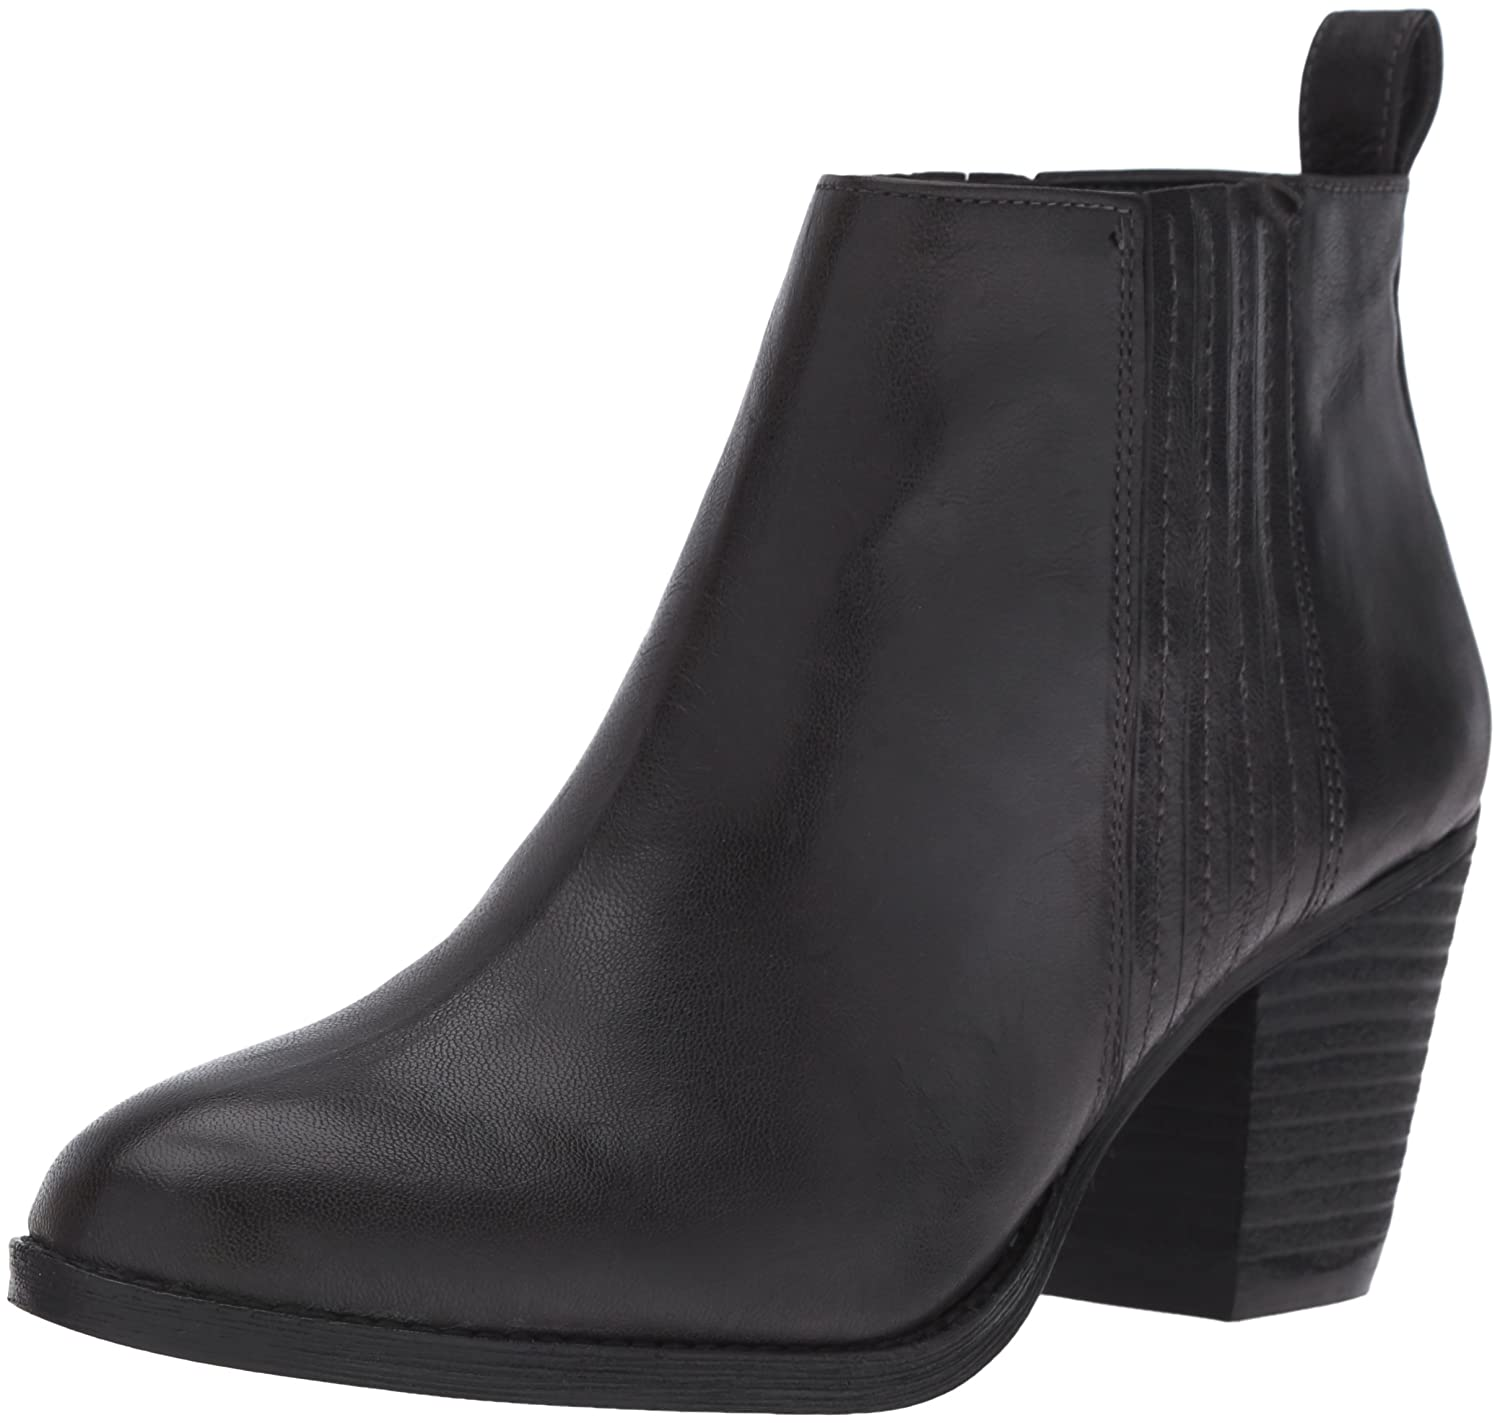 Nine West Women's Fiffi Ankle Bootie B01EWYK1Z8 8 B(M) US|Dark Grey Leather